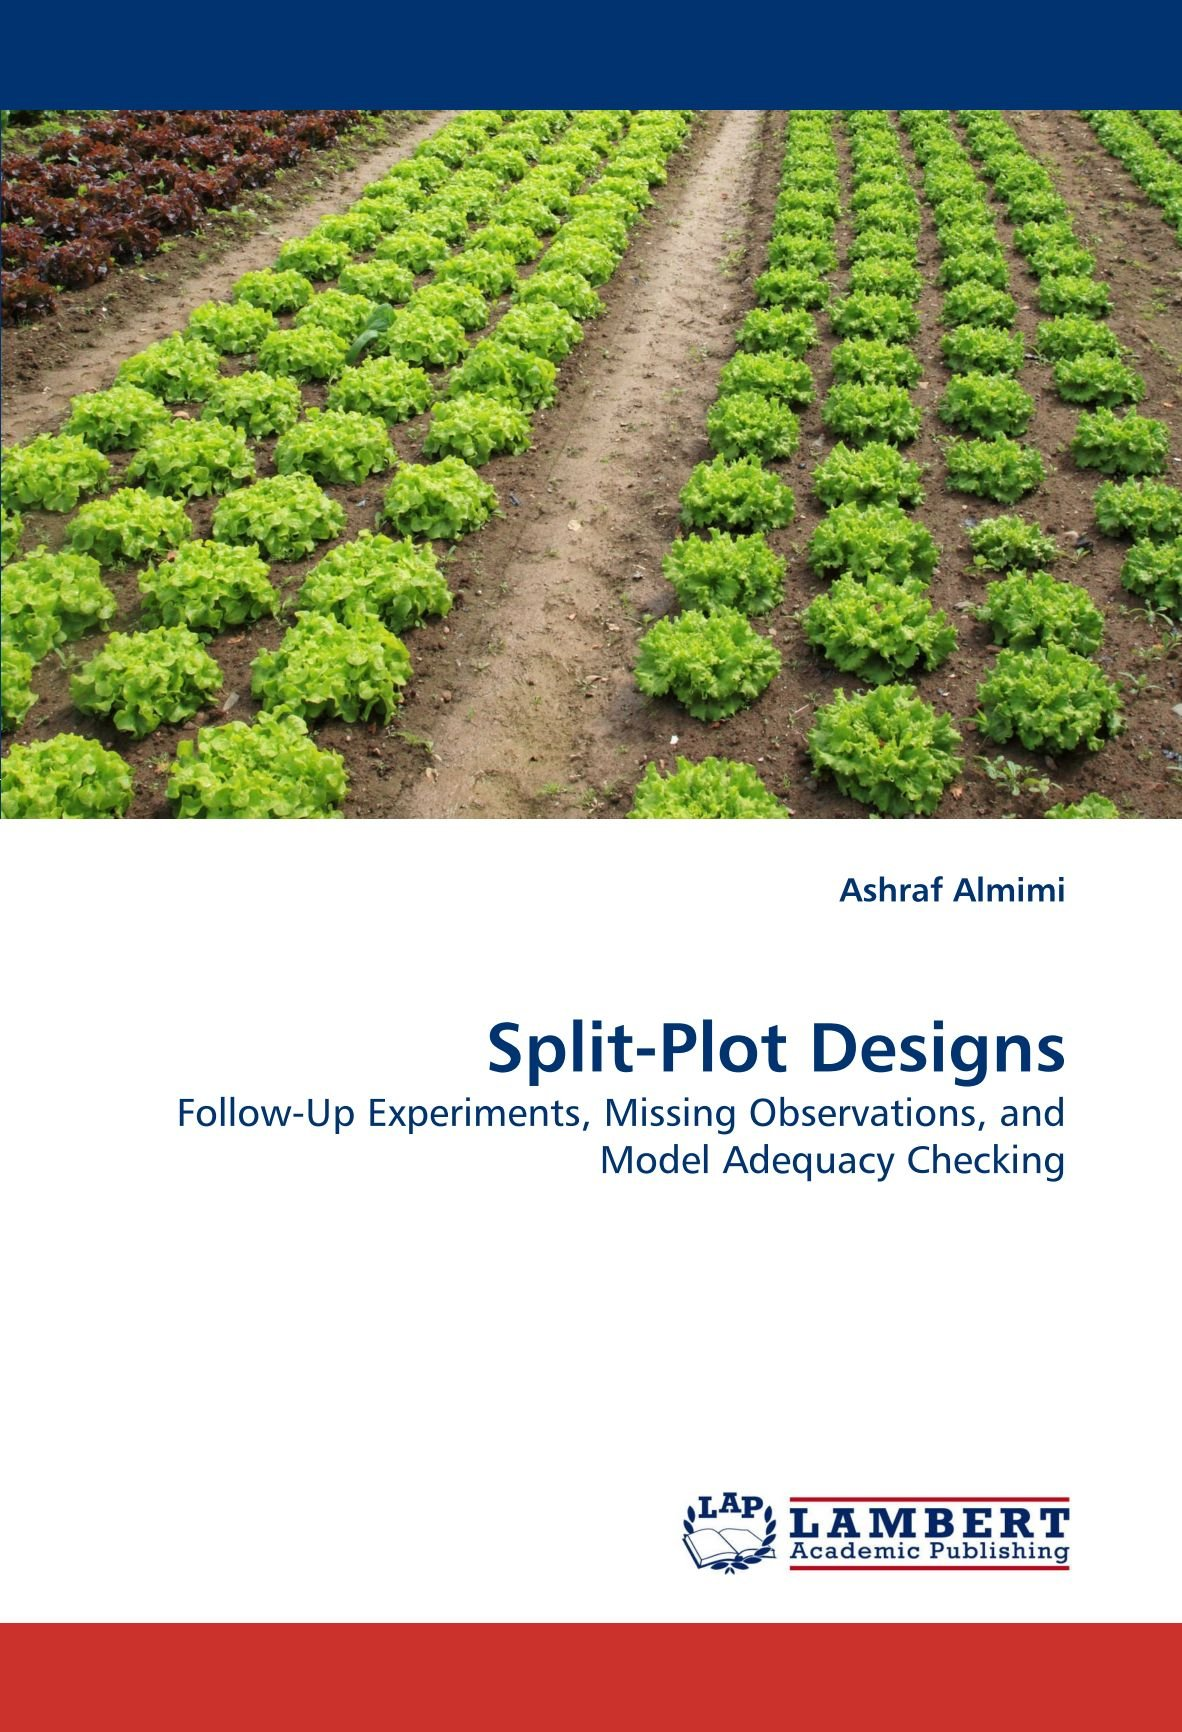 Split-Plot Designs: Follow-Up Experiments, Missing Observations, and